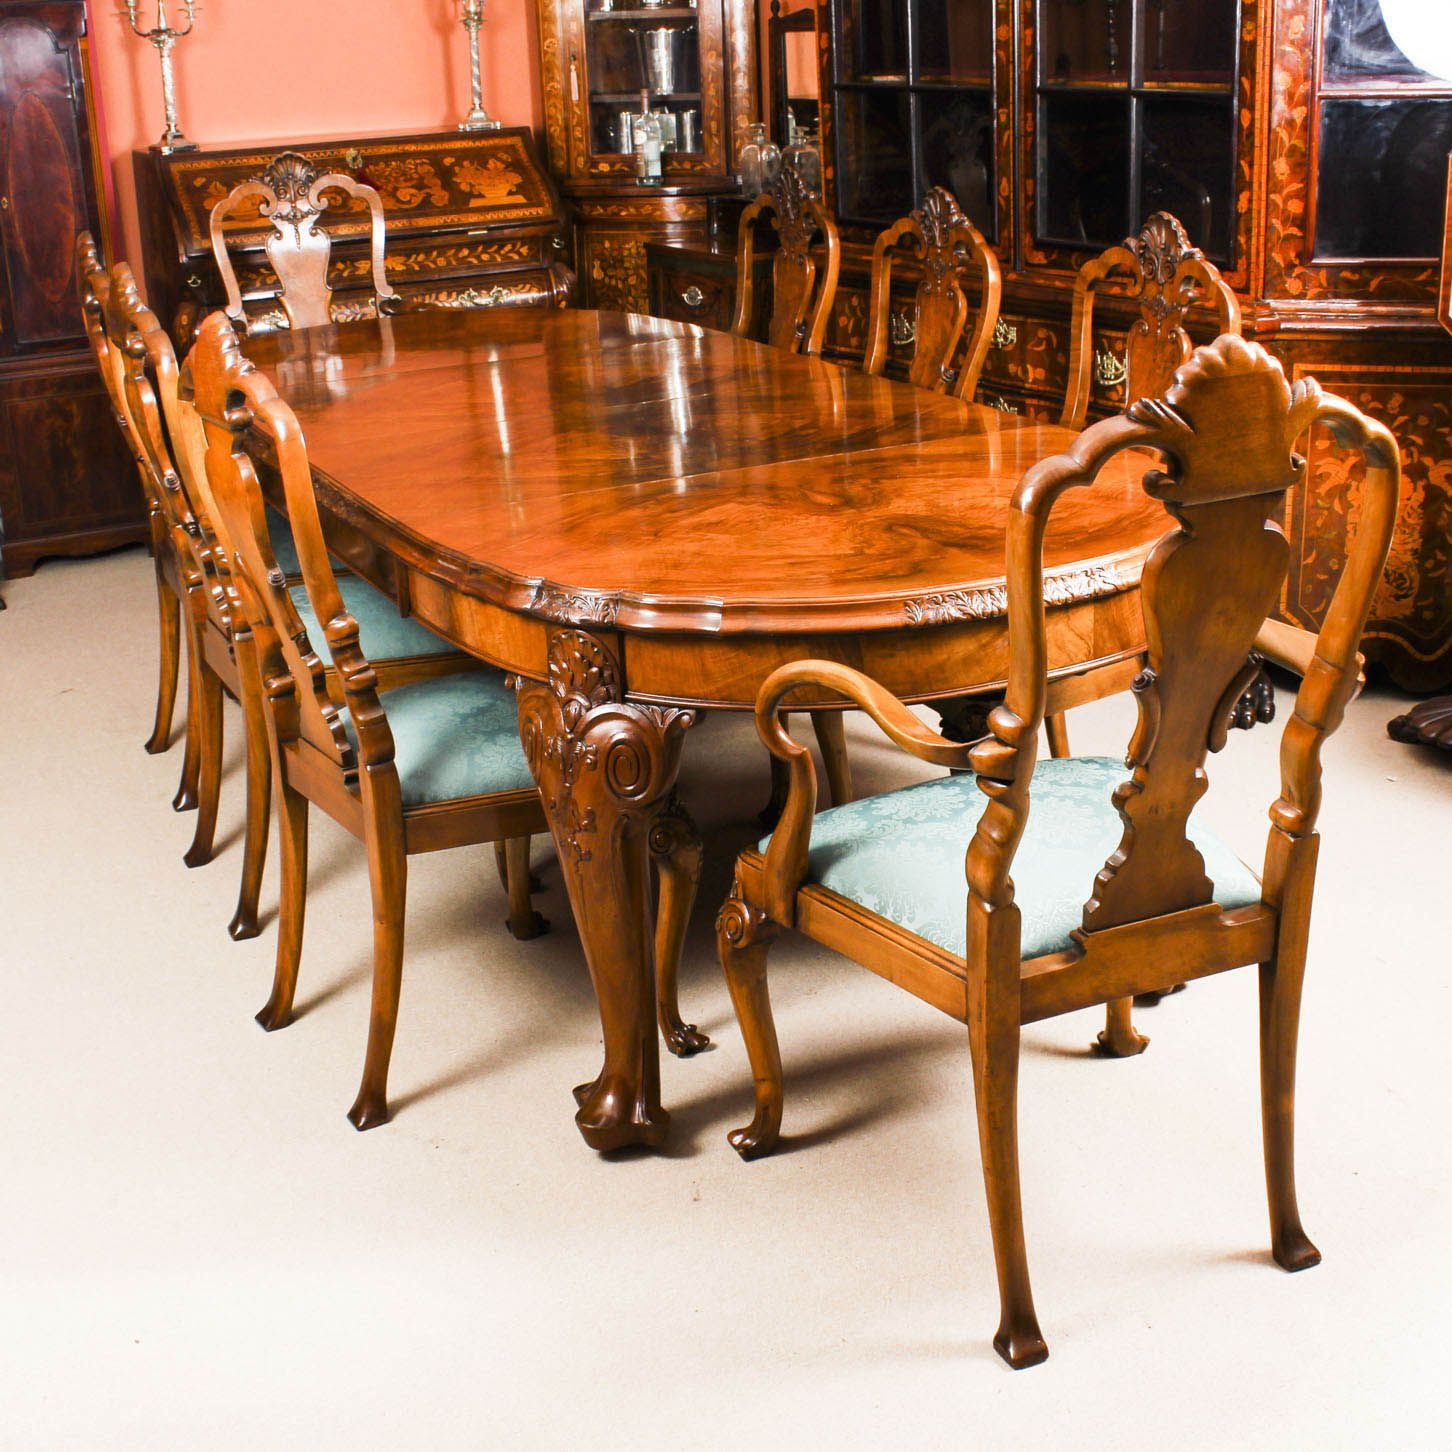 Antique Edwardian Queen Anne Revival Dining Table 8 Chairs C